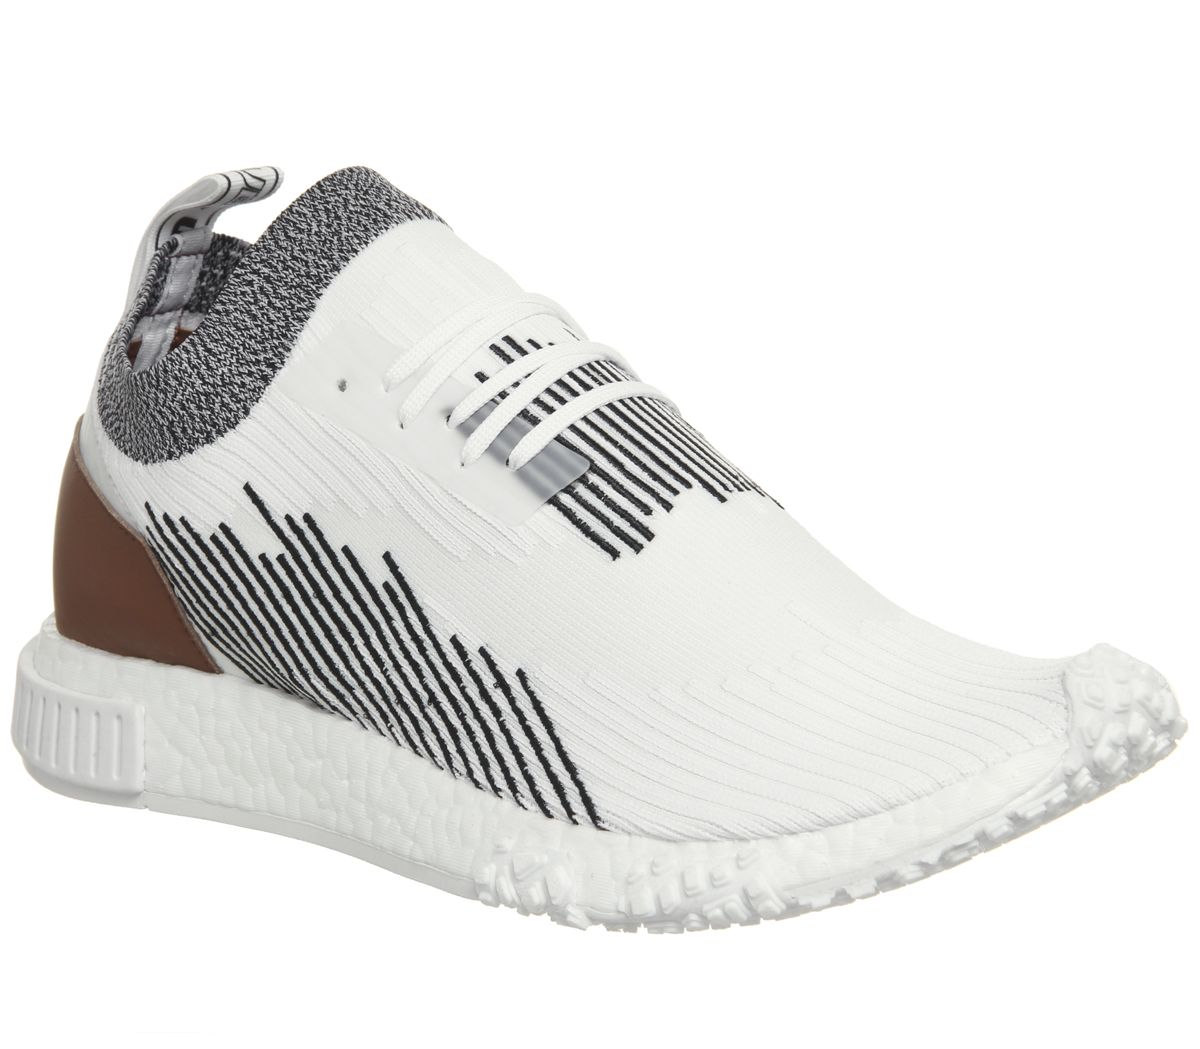 nouveau style f11cf 34f91 Nmd Racer Primeknit Trainers